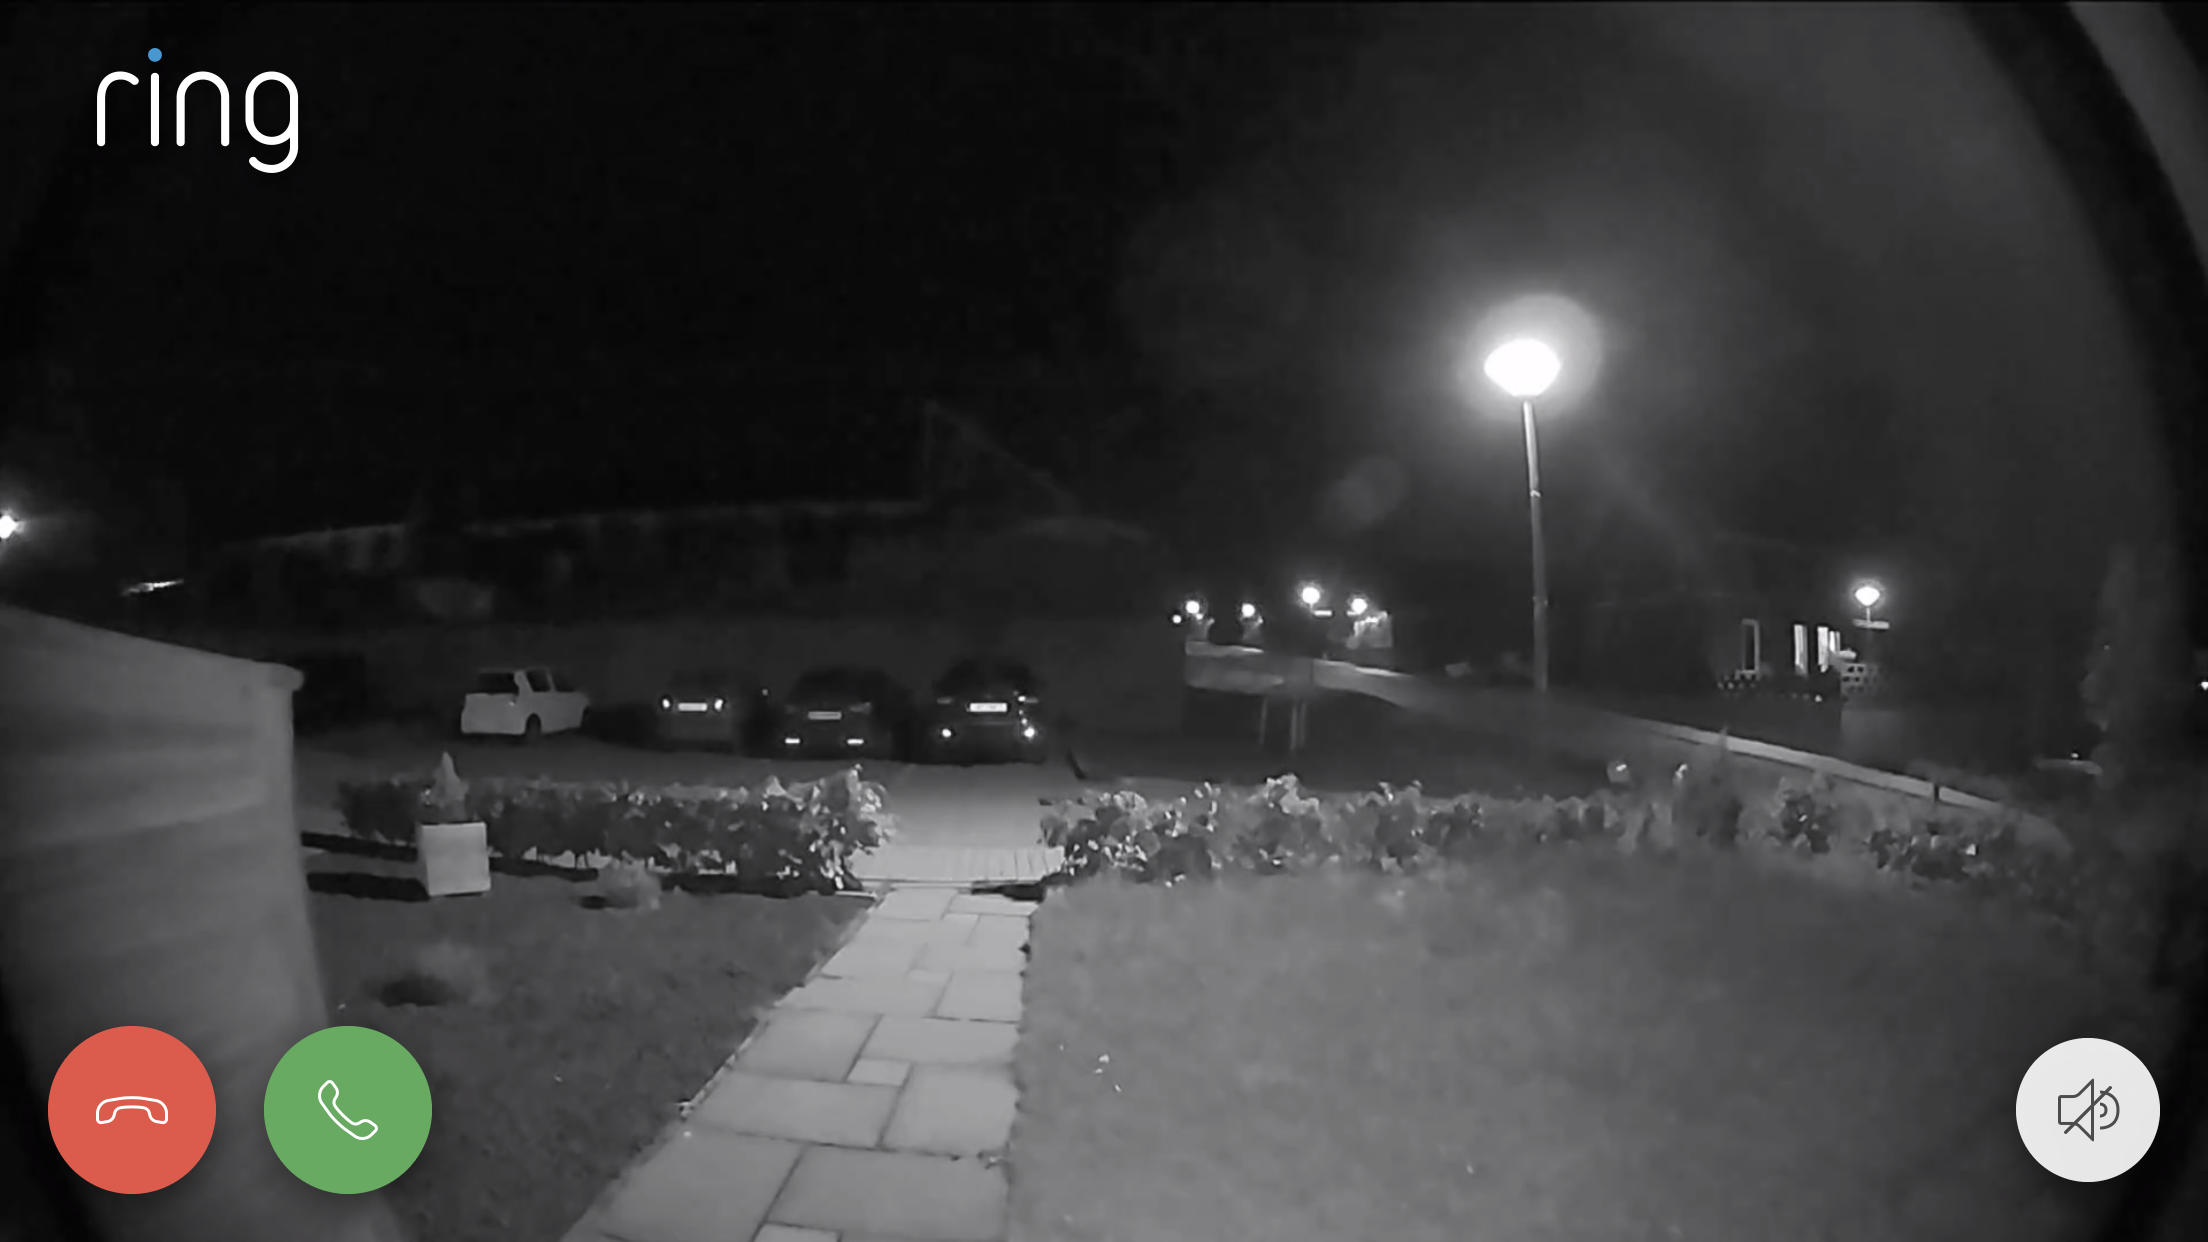 Ring Video Doorbell 2 nacht